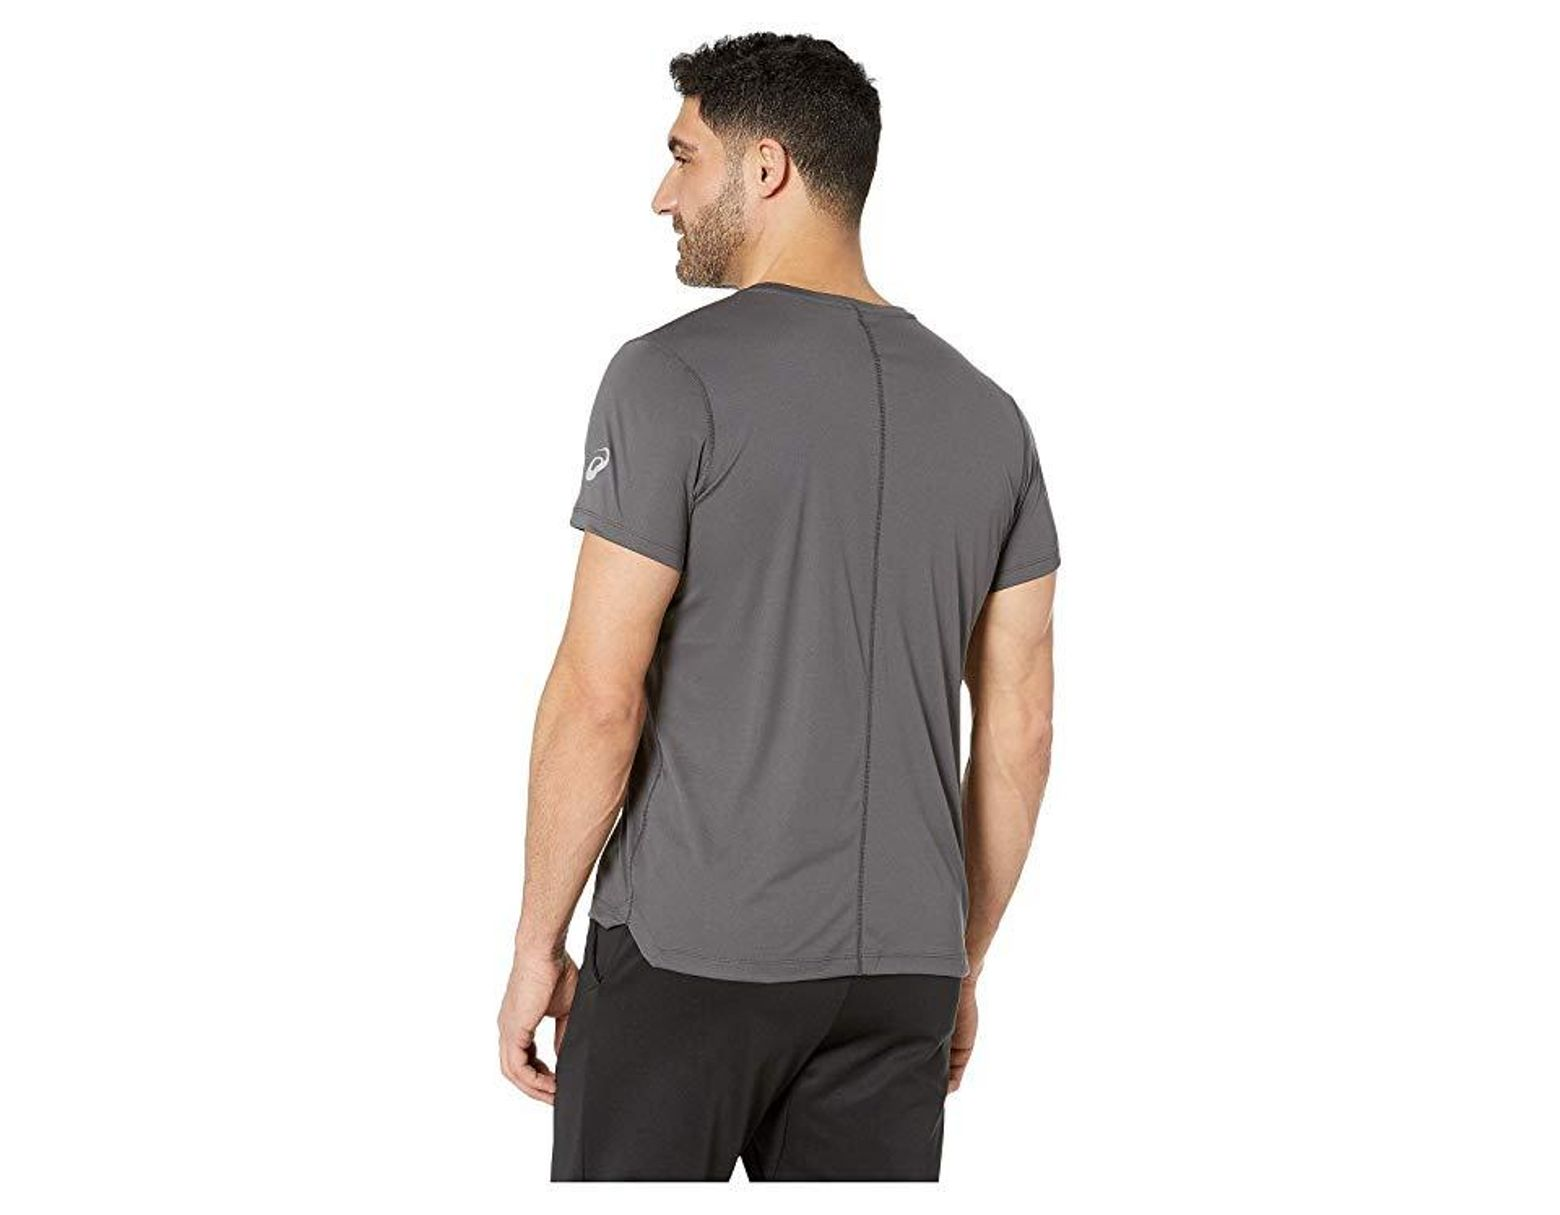 c8cfde463ead56 Asics Silver Short Sleeve Two Top (dark Grey) Clothing in Gray for Men -  Save 18% - Lyst